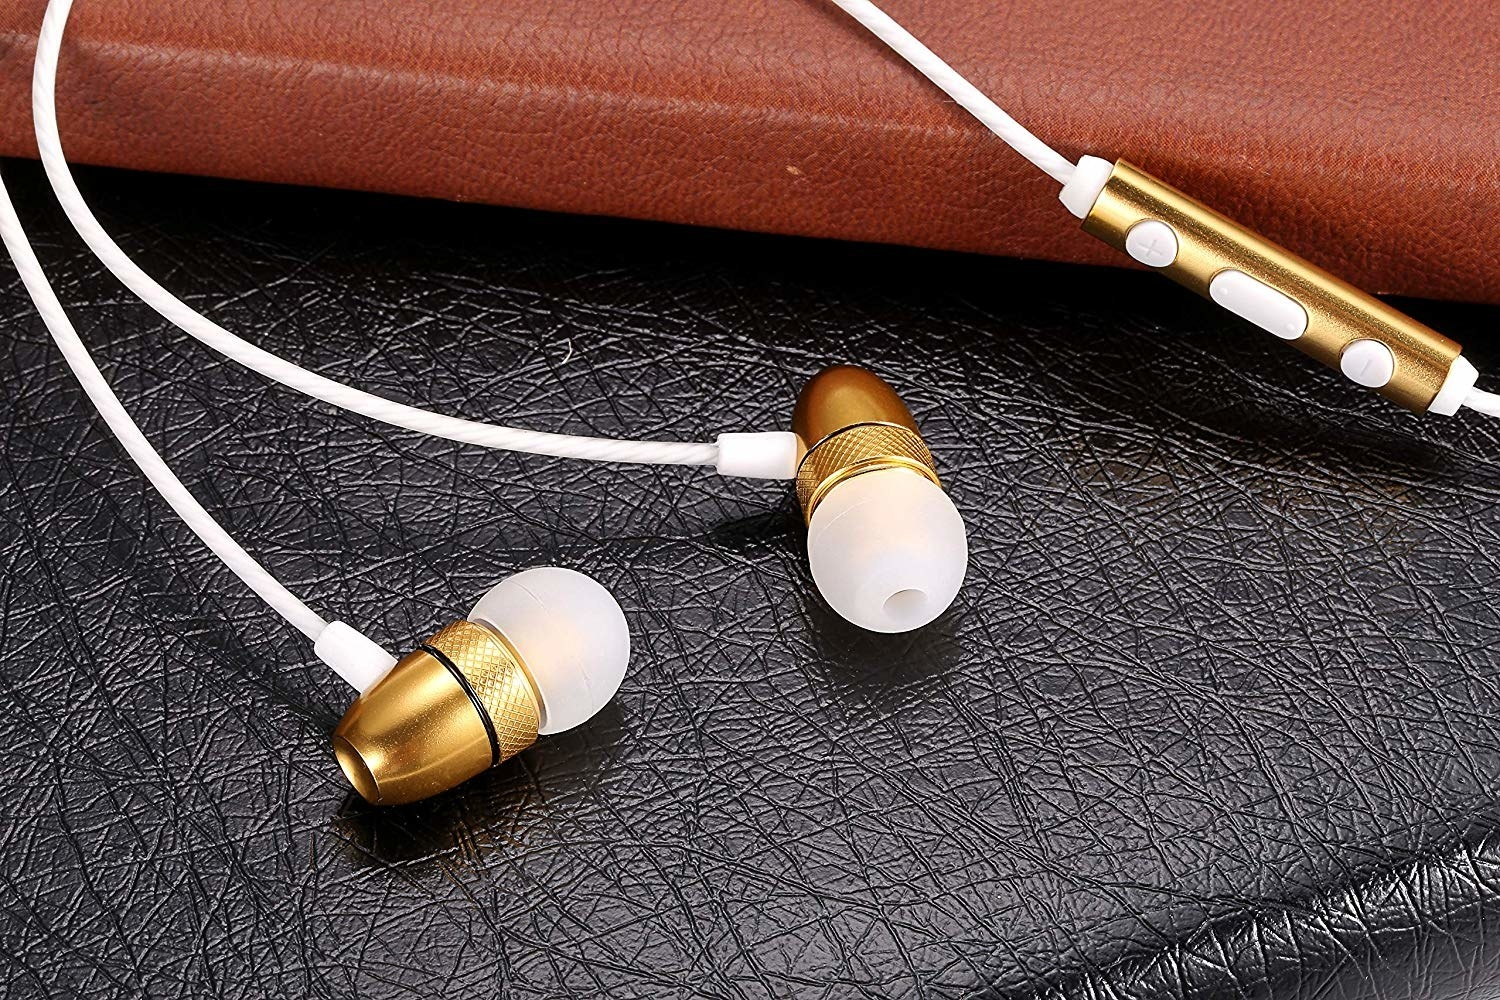 The earbuds, featuring white ear tips and cord with gold accents